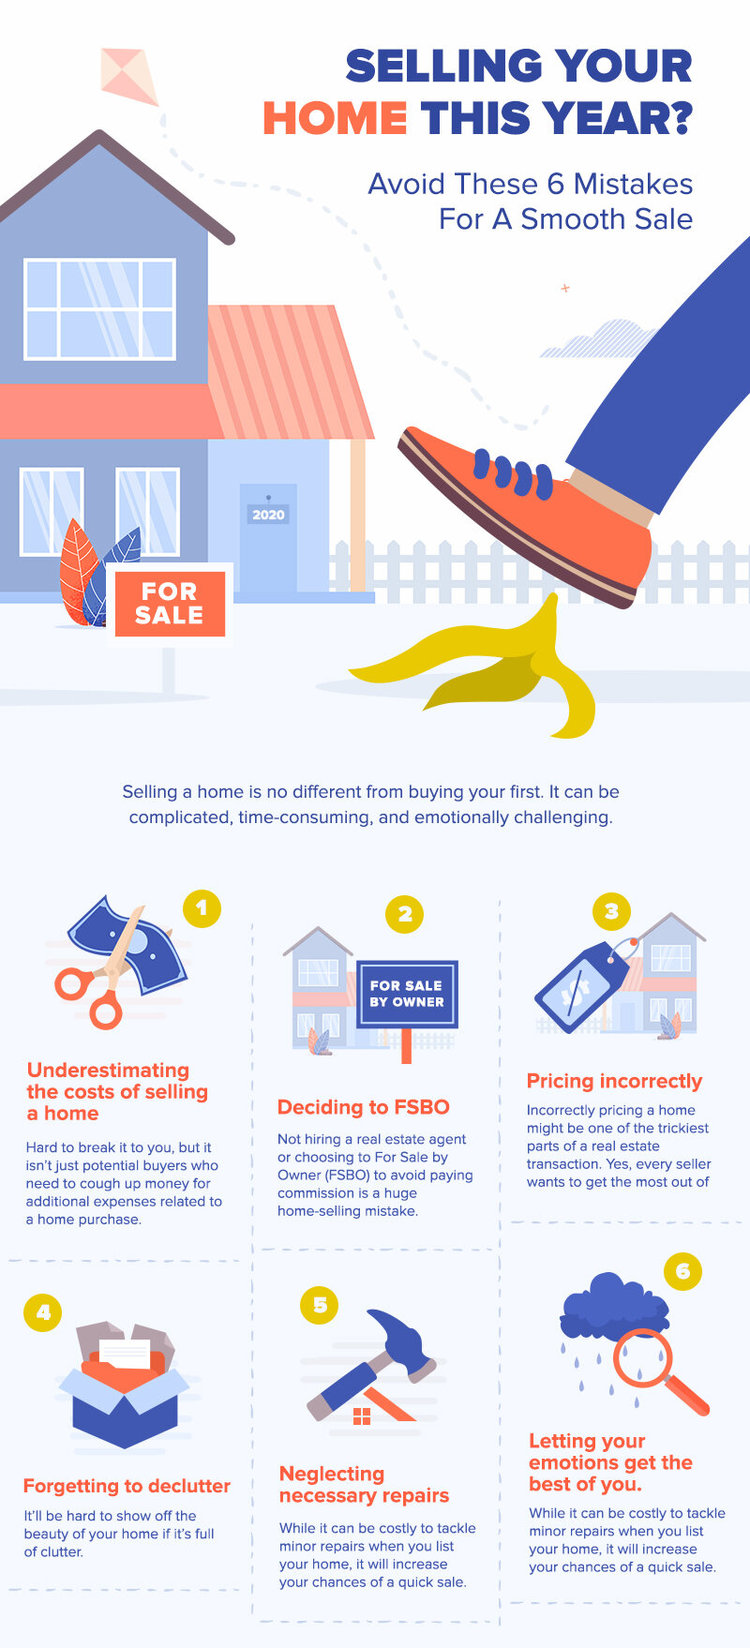 Selling Your Home This Year? Avoid These 6 Mistakes For A Smooth Sale